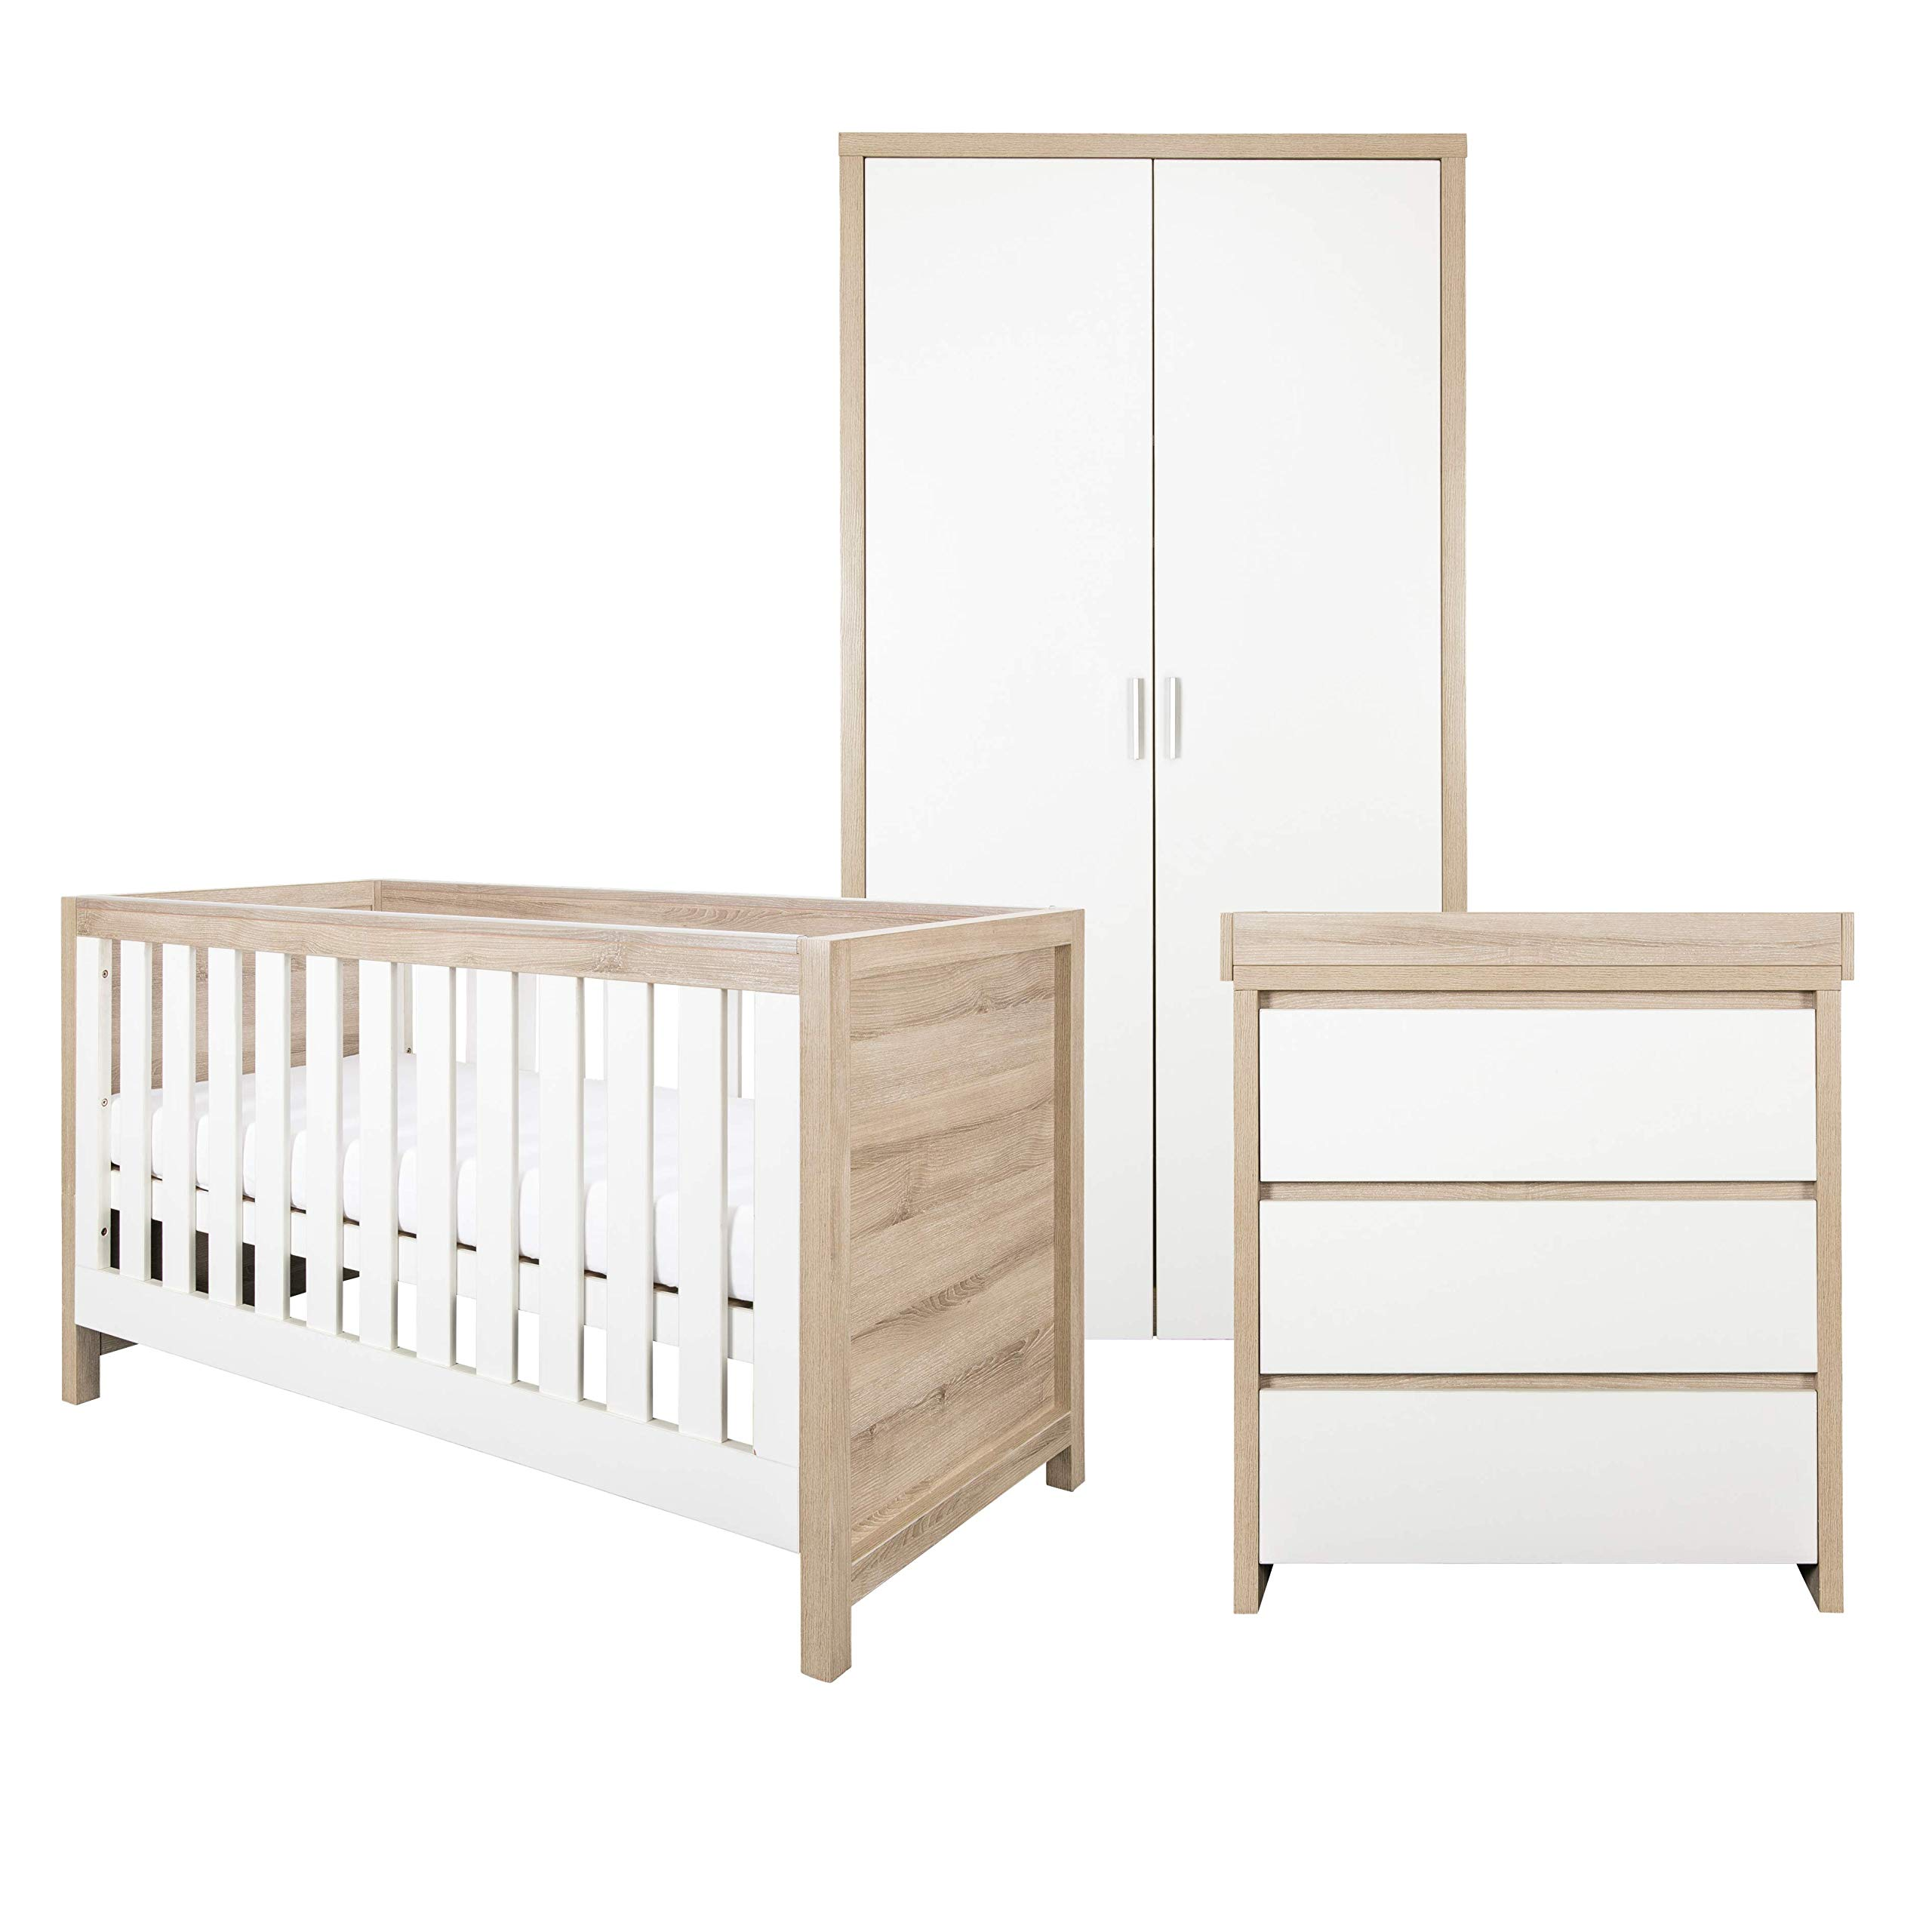 Tutti Bambini Modena Nursery Furniture Set (9 Piece)  Convertible Baby Cot  Bed, Chest of Drawers Changer and Wardrobe Set  Solid Wood Furniture (Oak